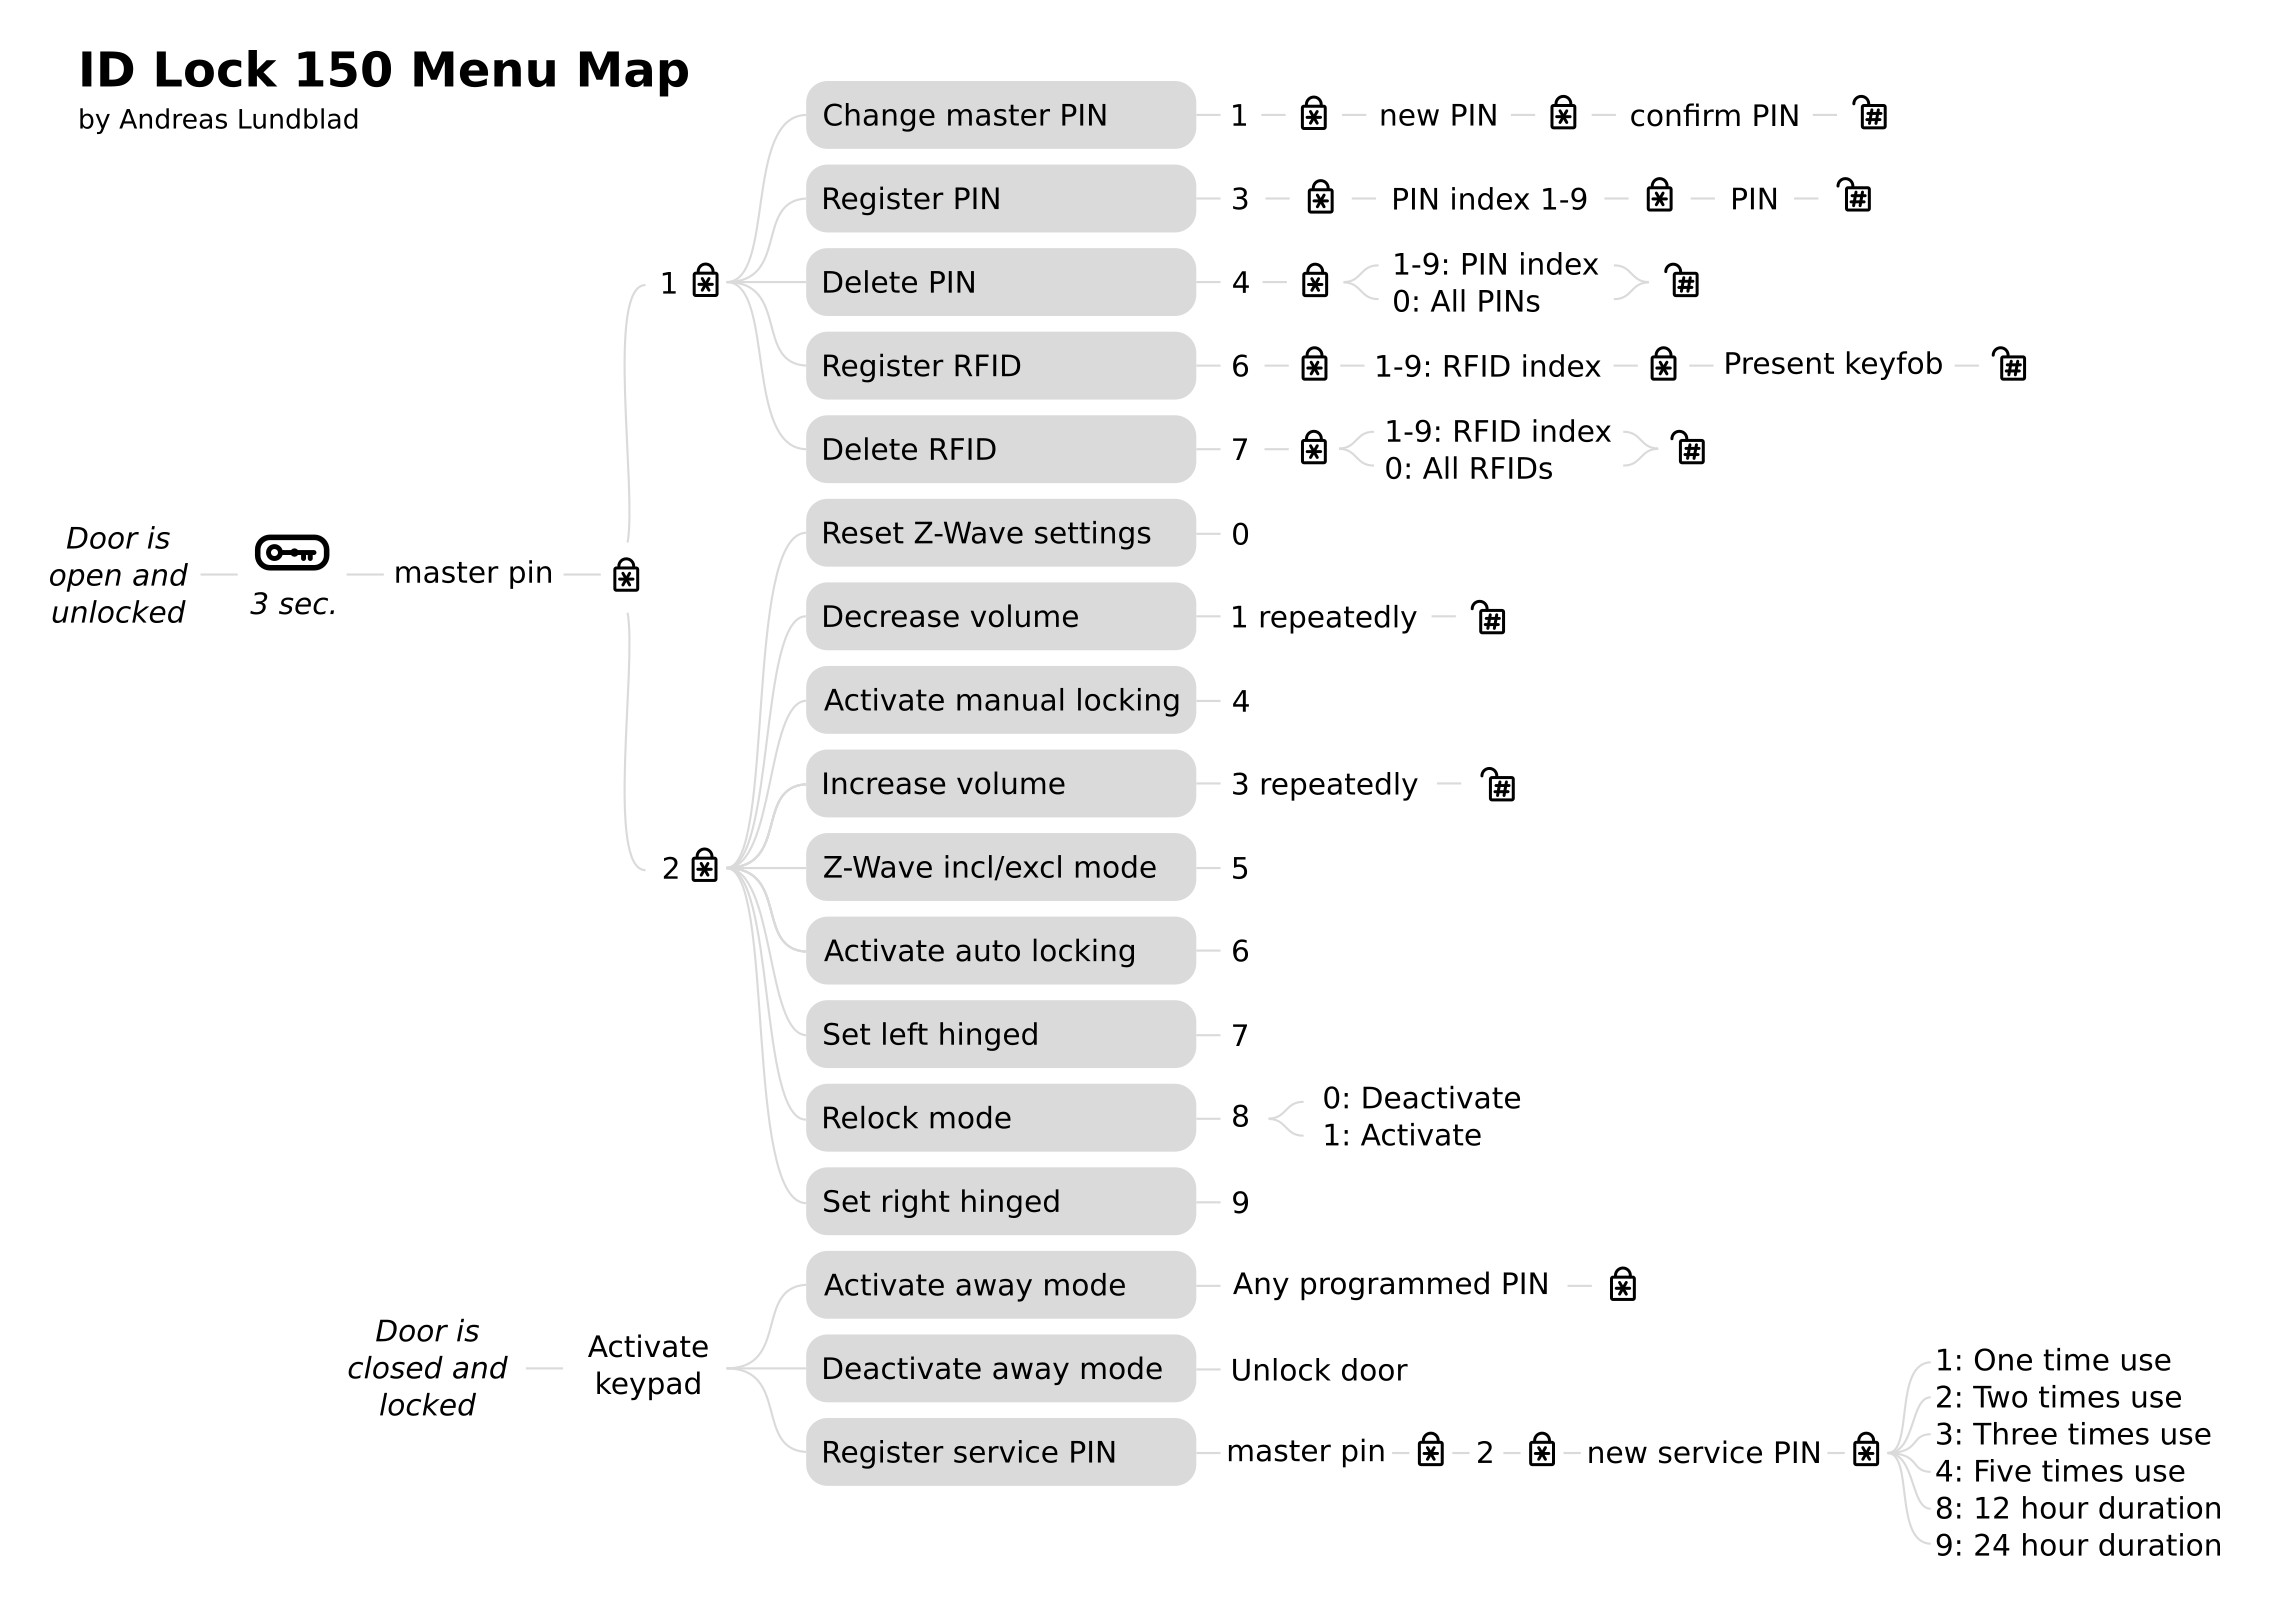 id-lock-150-menu-map.jpg